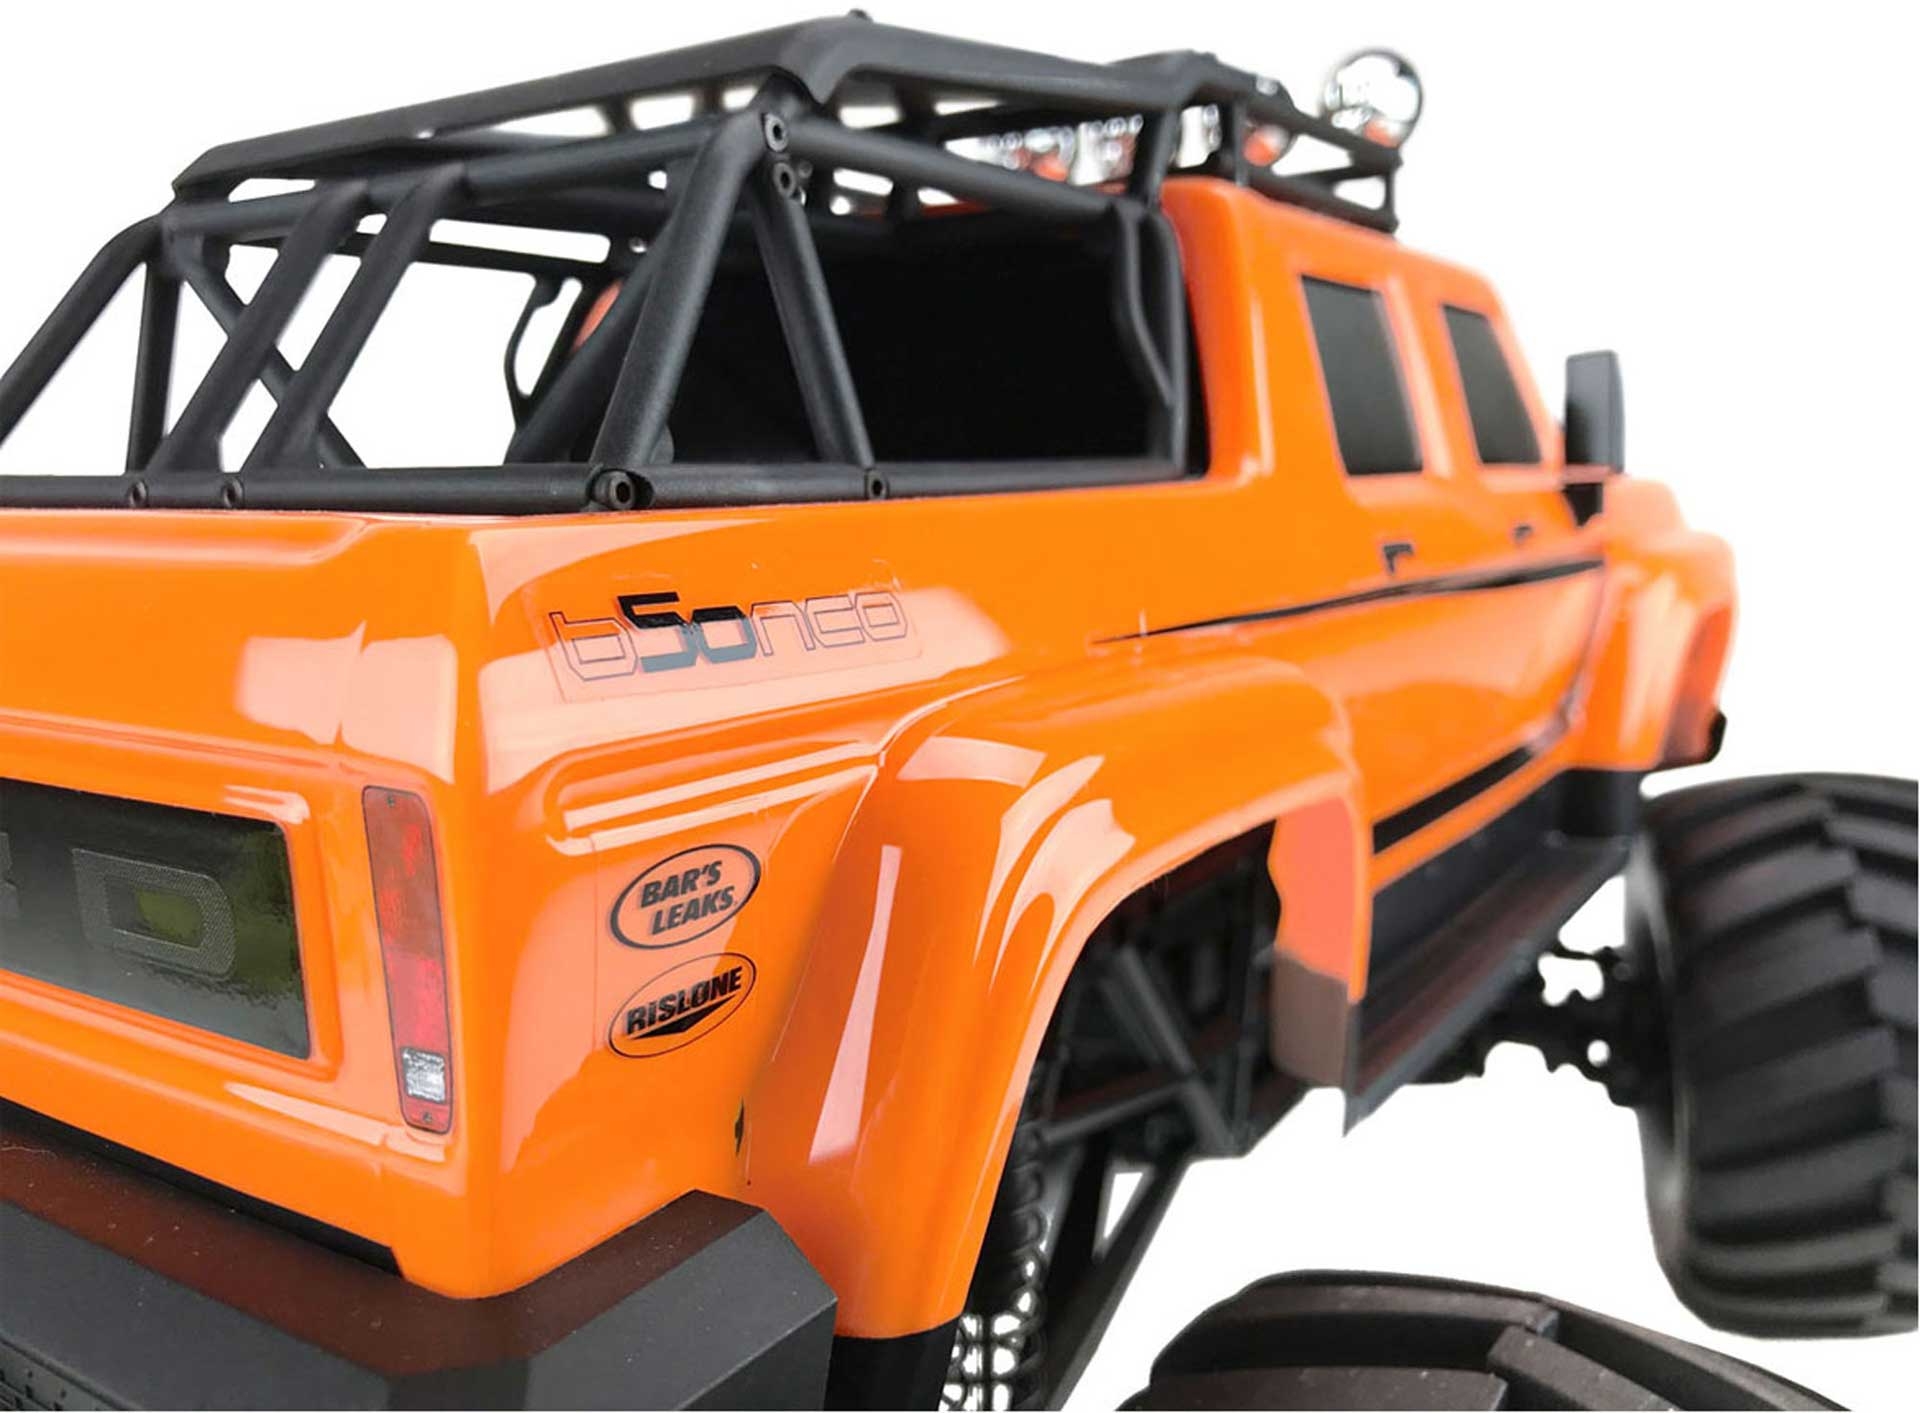 CEN FORD B50 MONSTER TRUCK 4WD SOLID AXLE 1/10 RTR EP